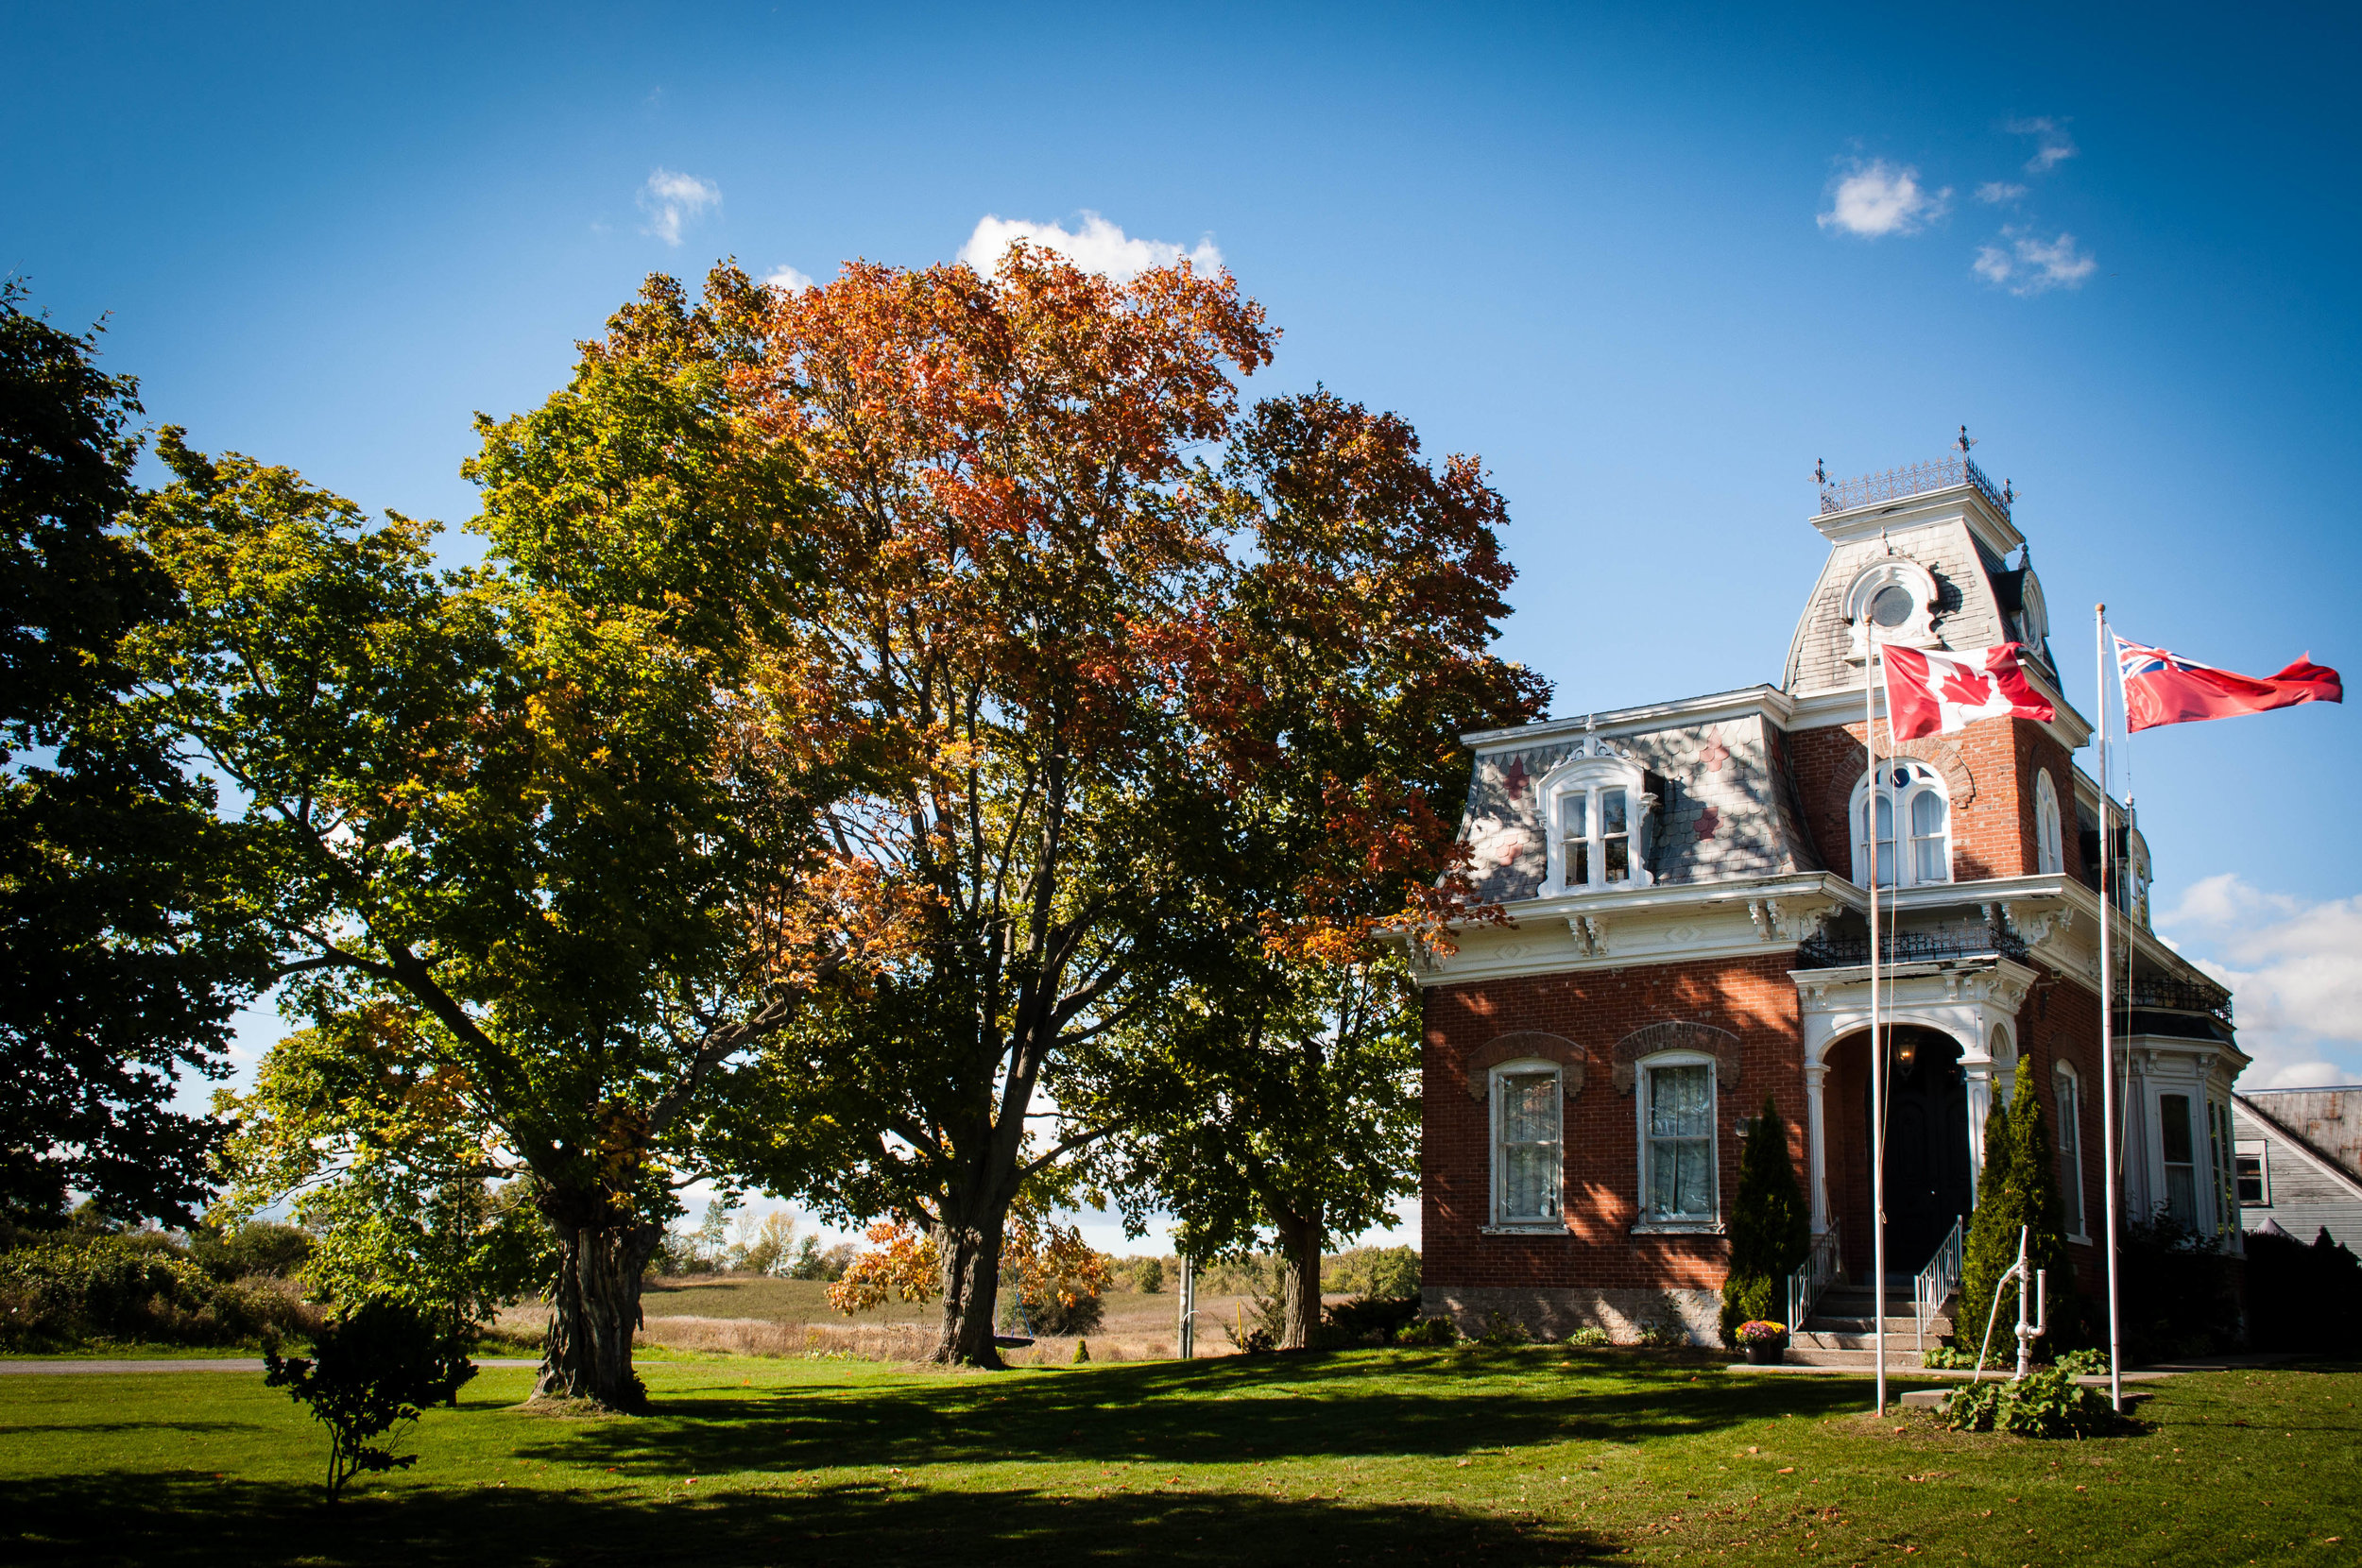 Kinsip- Things to do in Prince Edward County